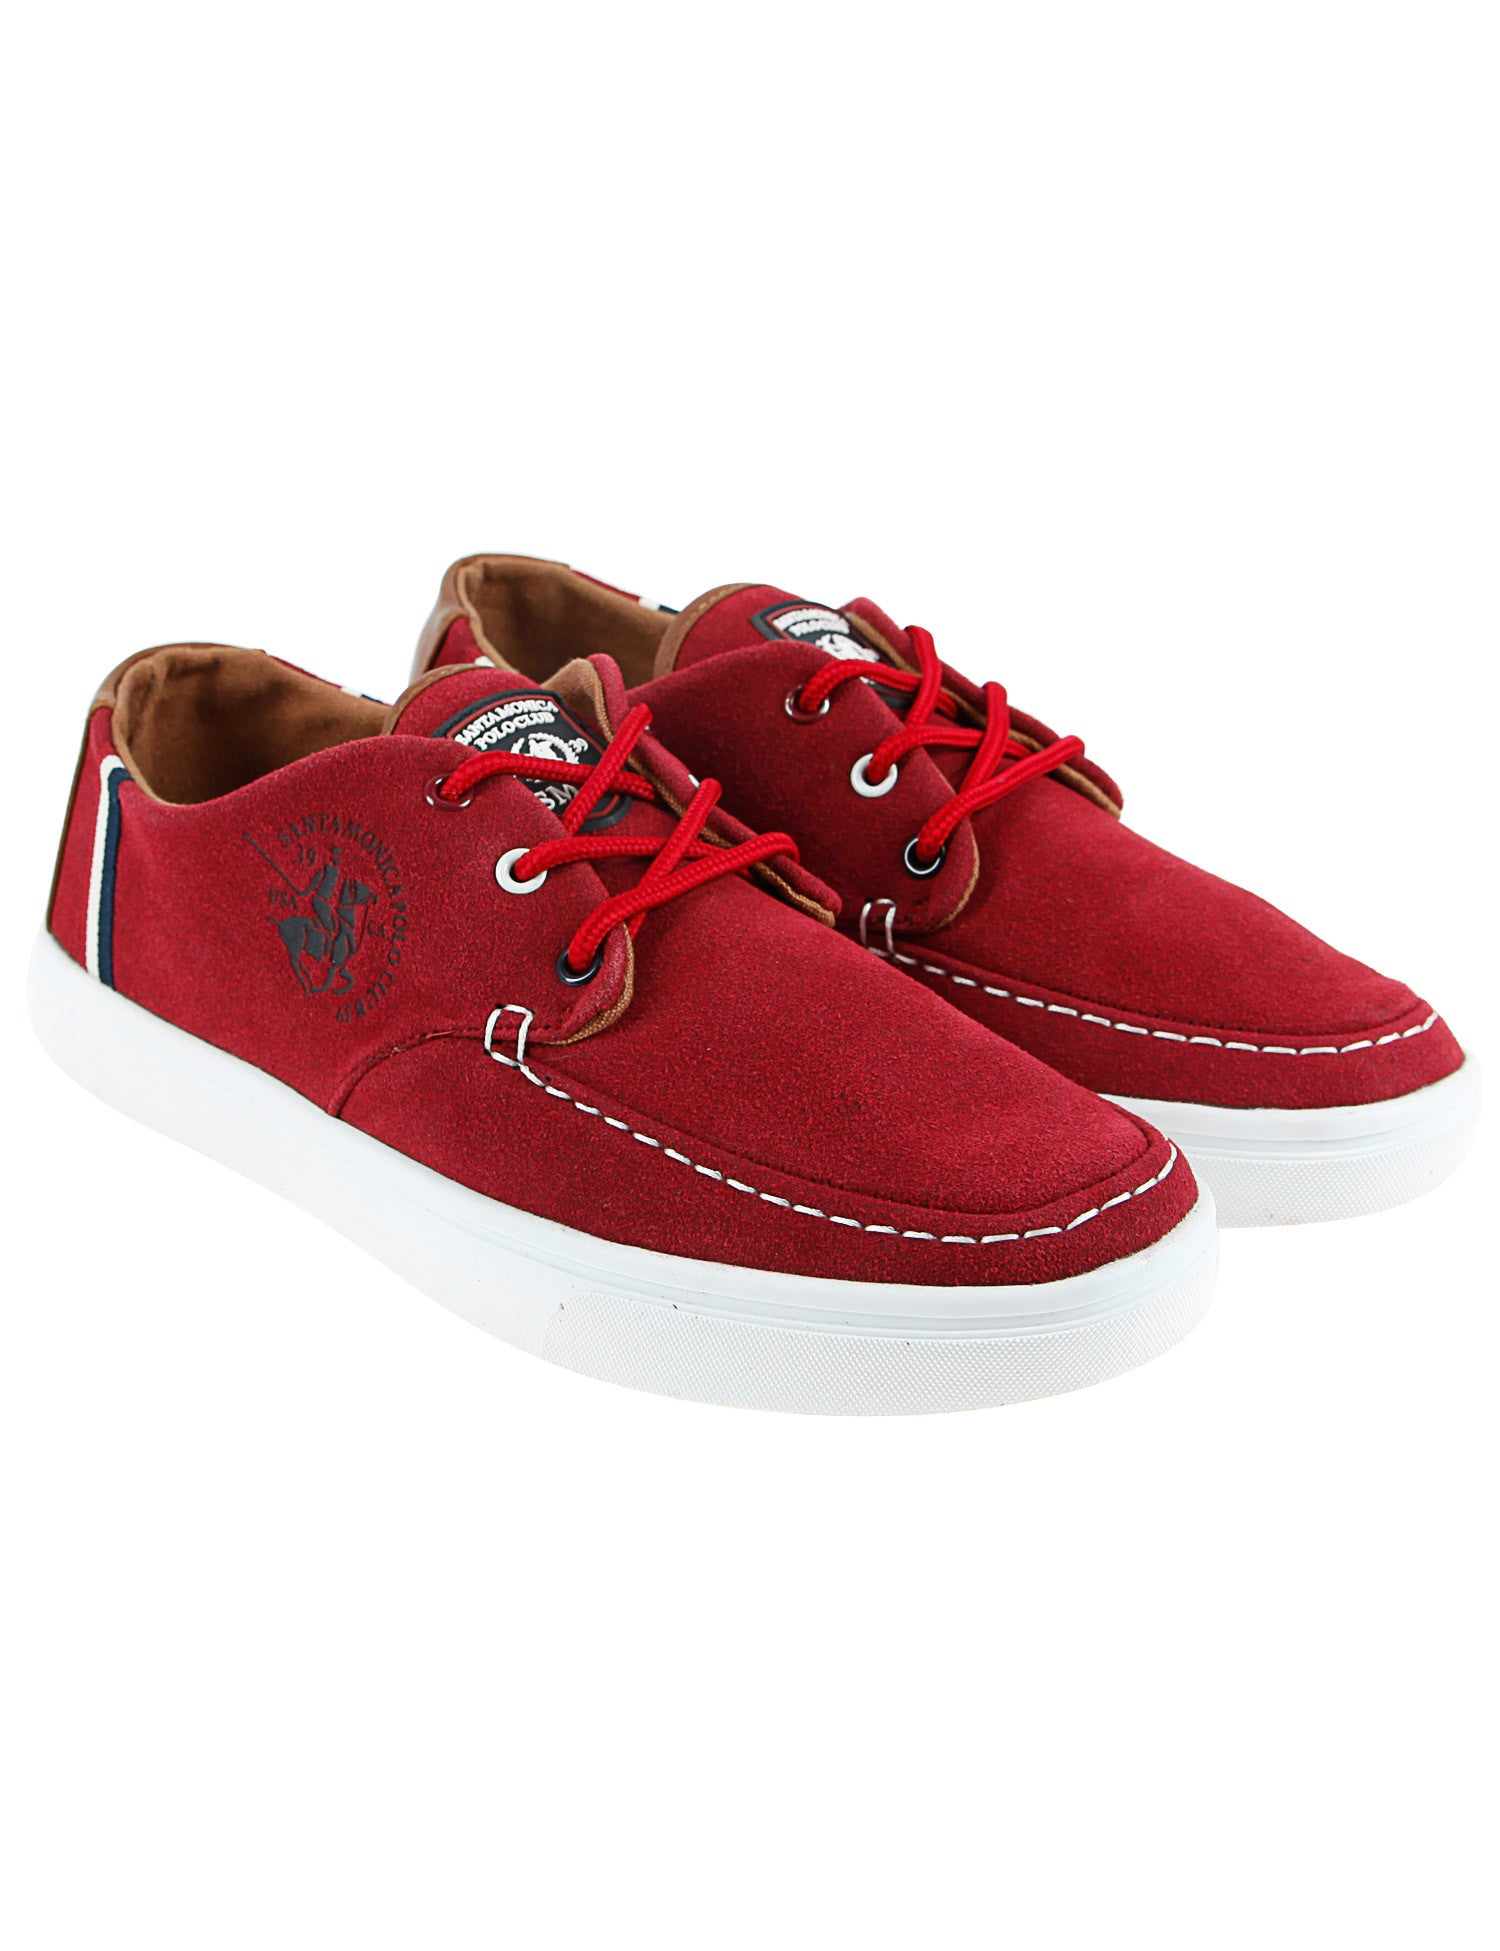 Santa Monica Sailing Shoes Port Red